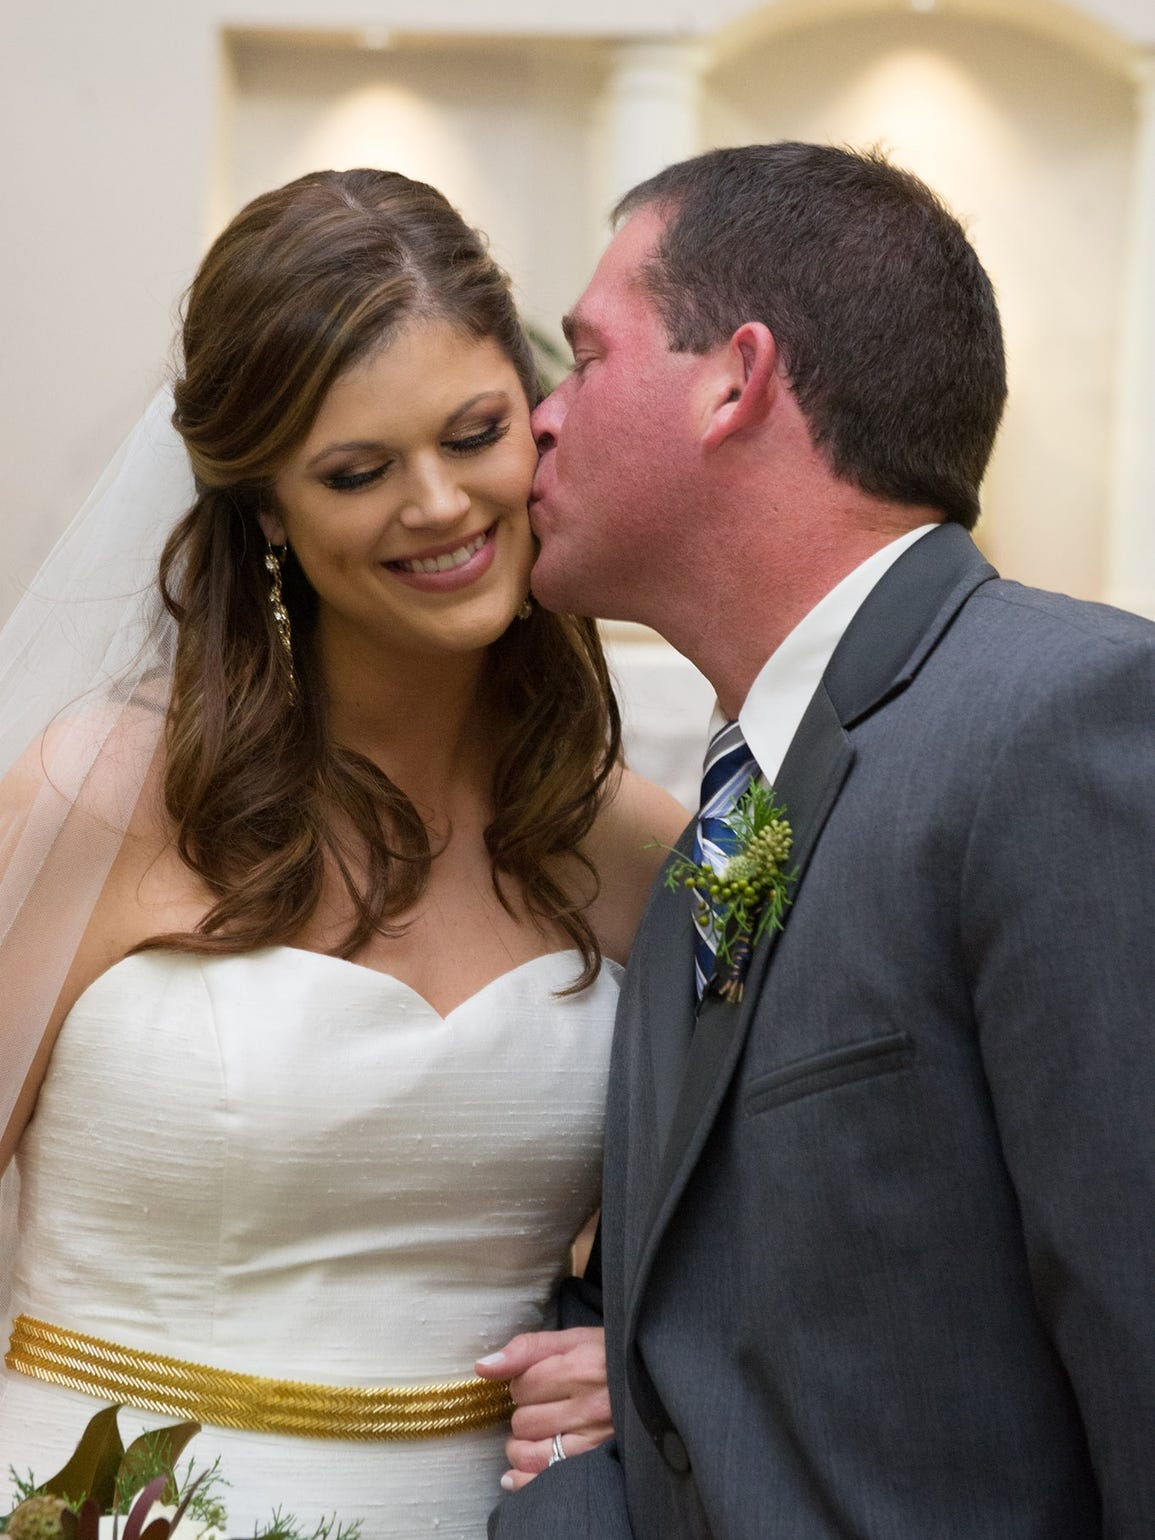 Melissa and Ryan got married in 2014.